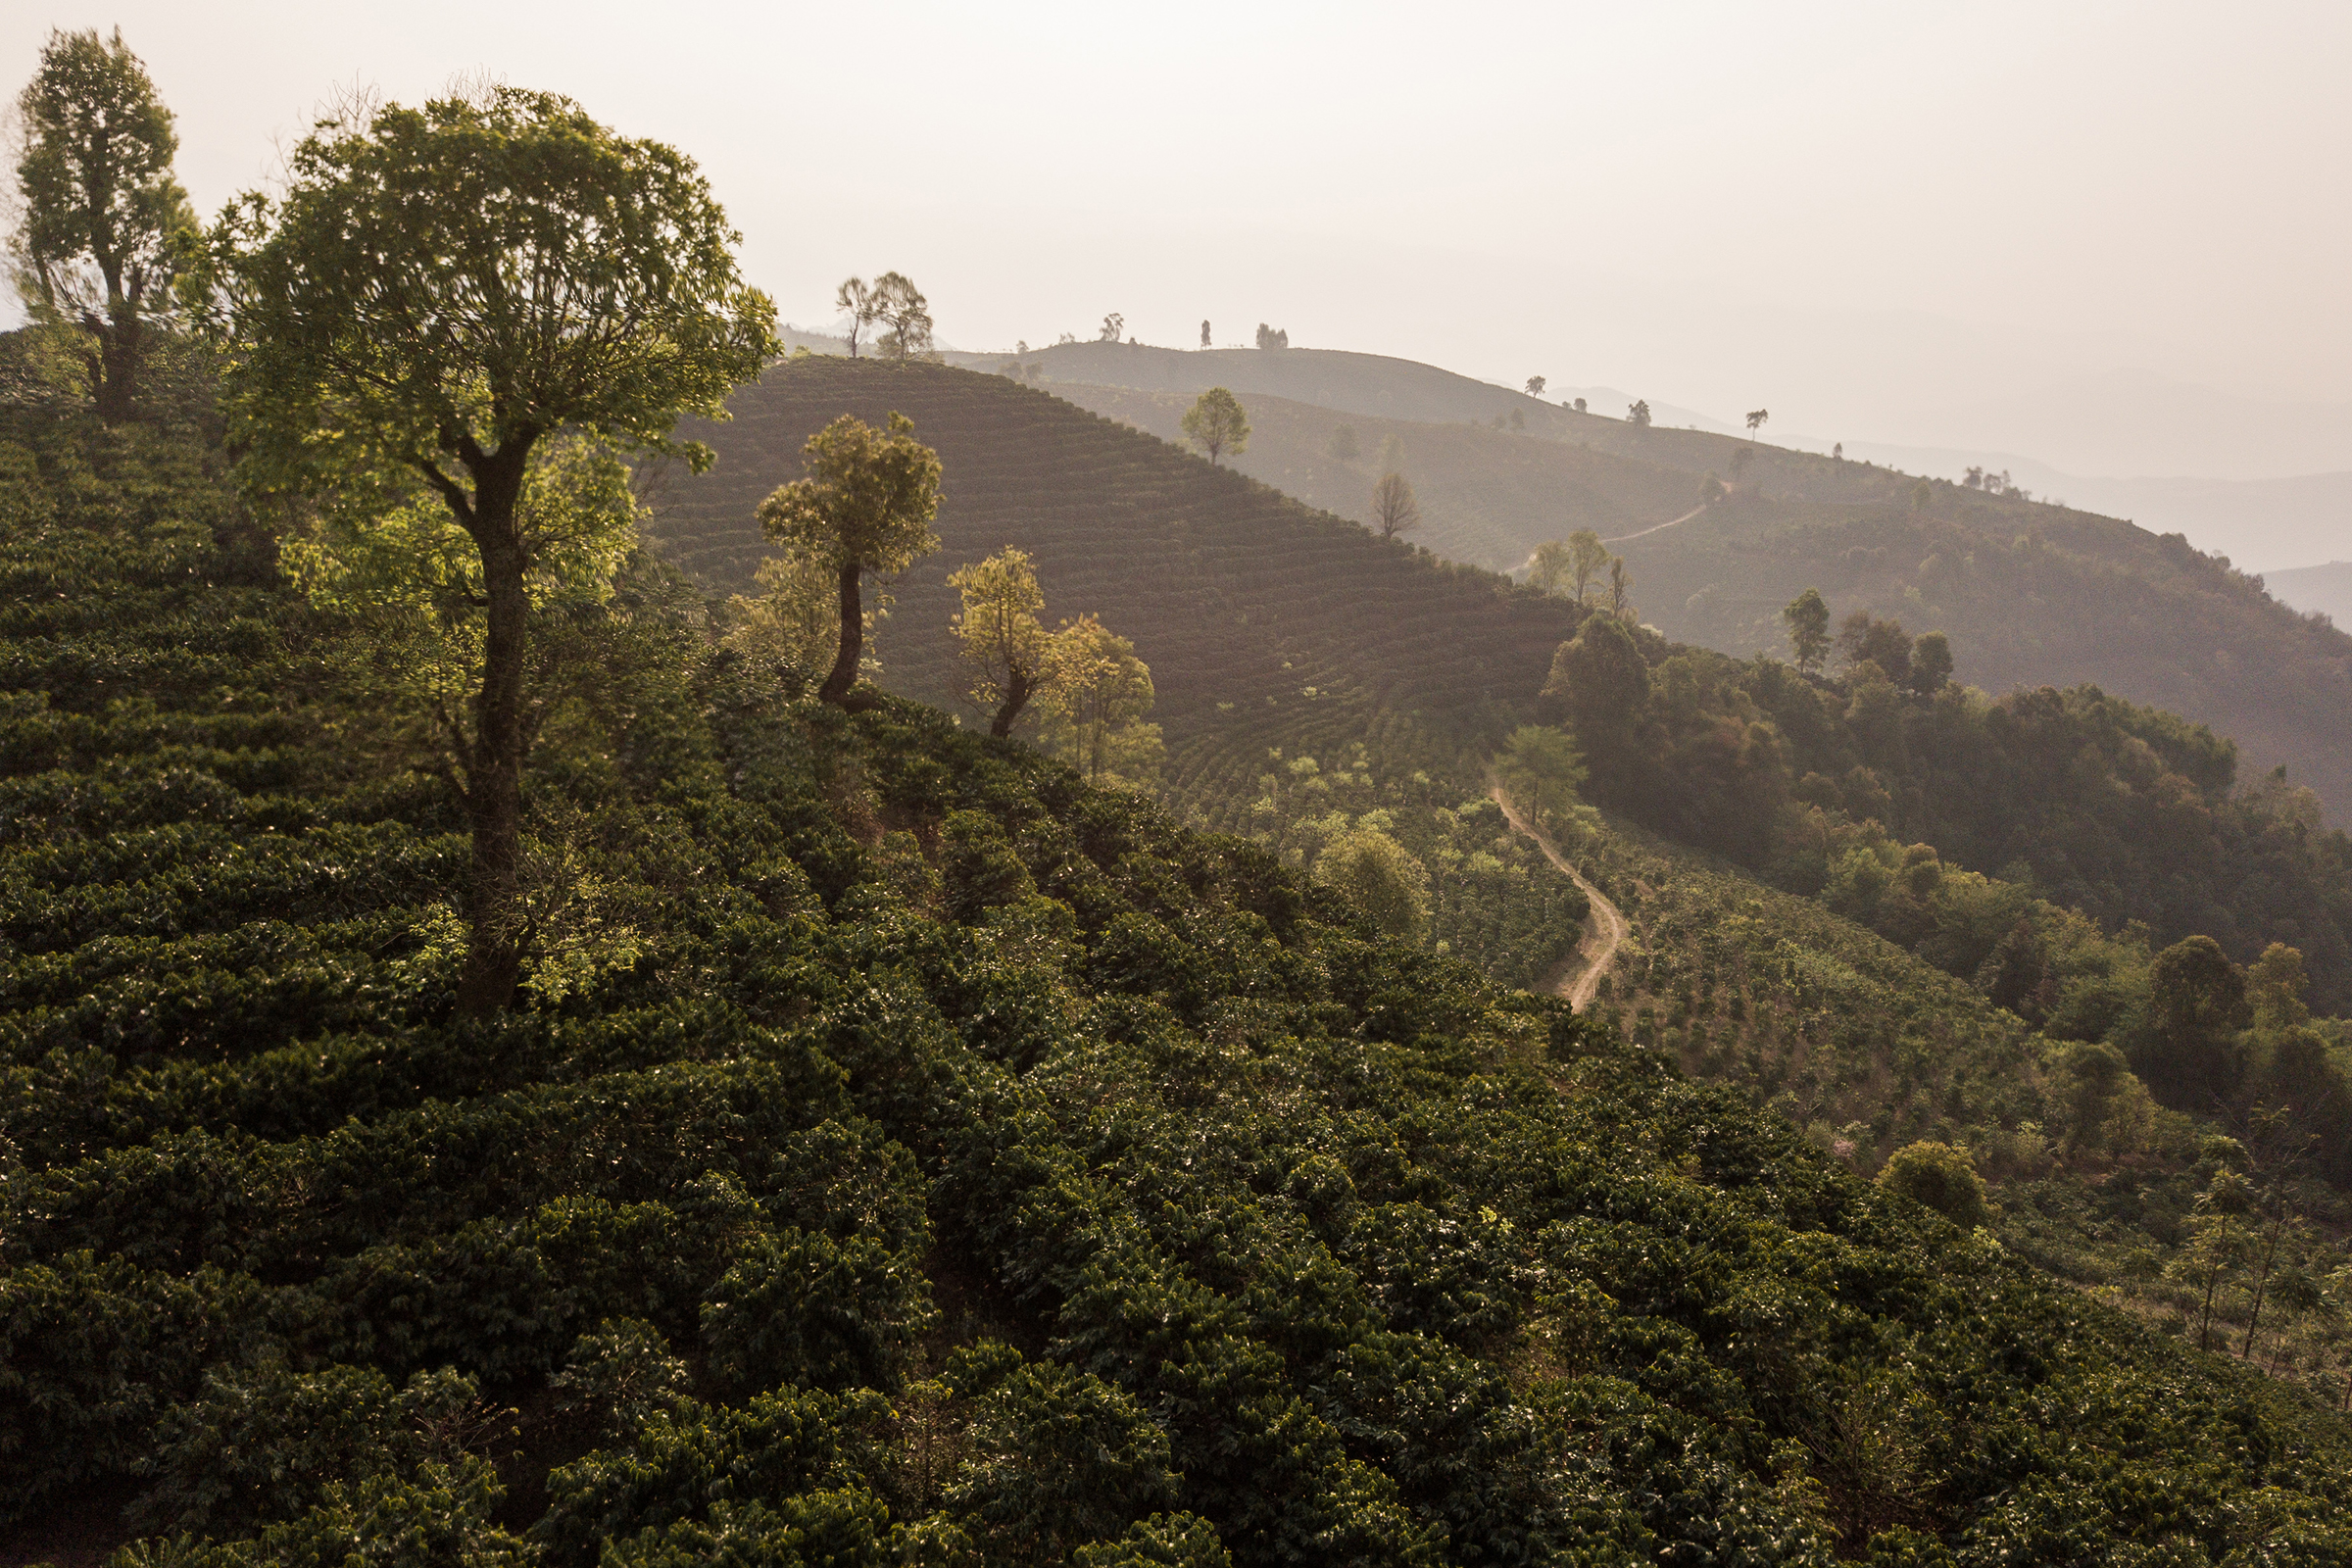 Much of what used to be prime forest habitat for gibbons has been transformed into coffee plantations.